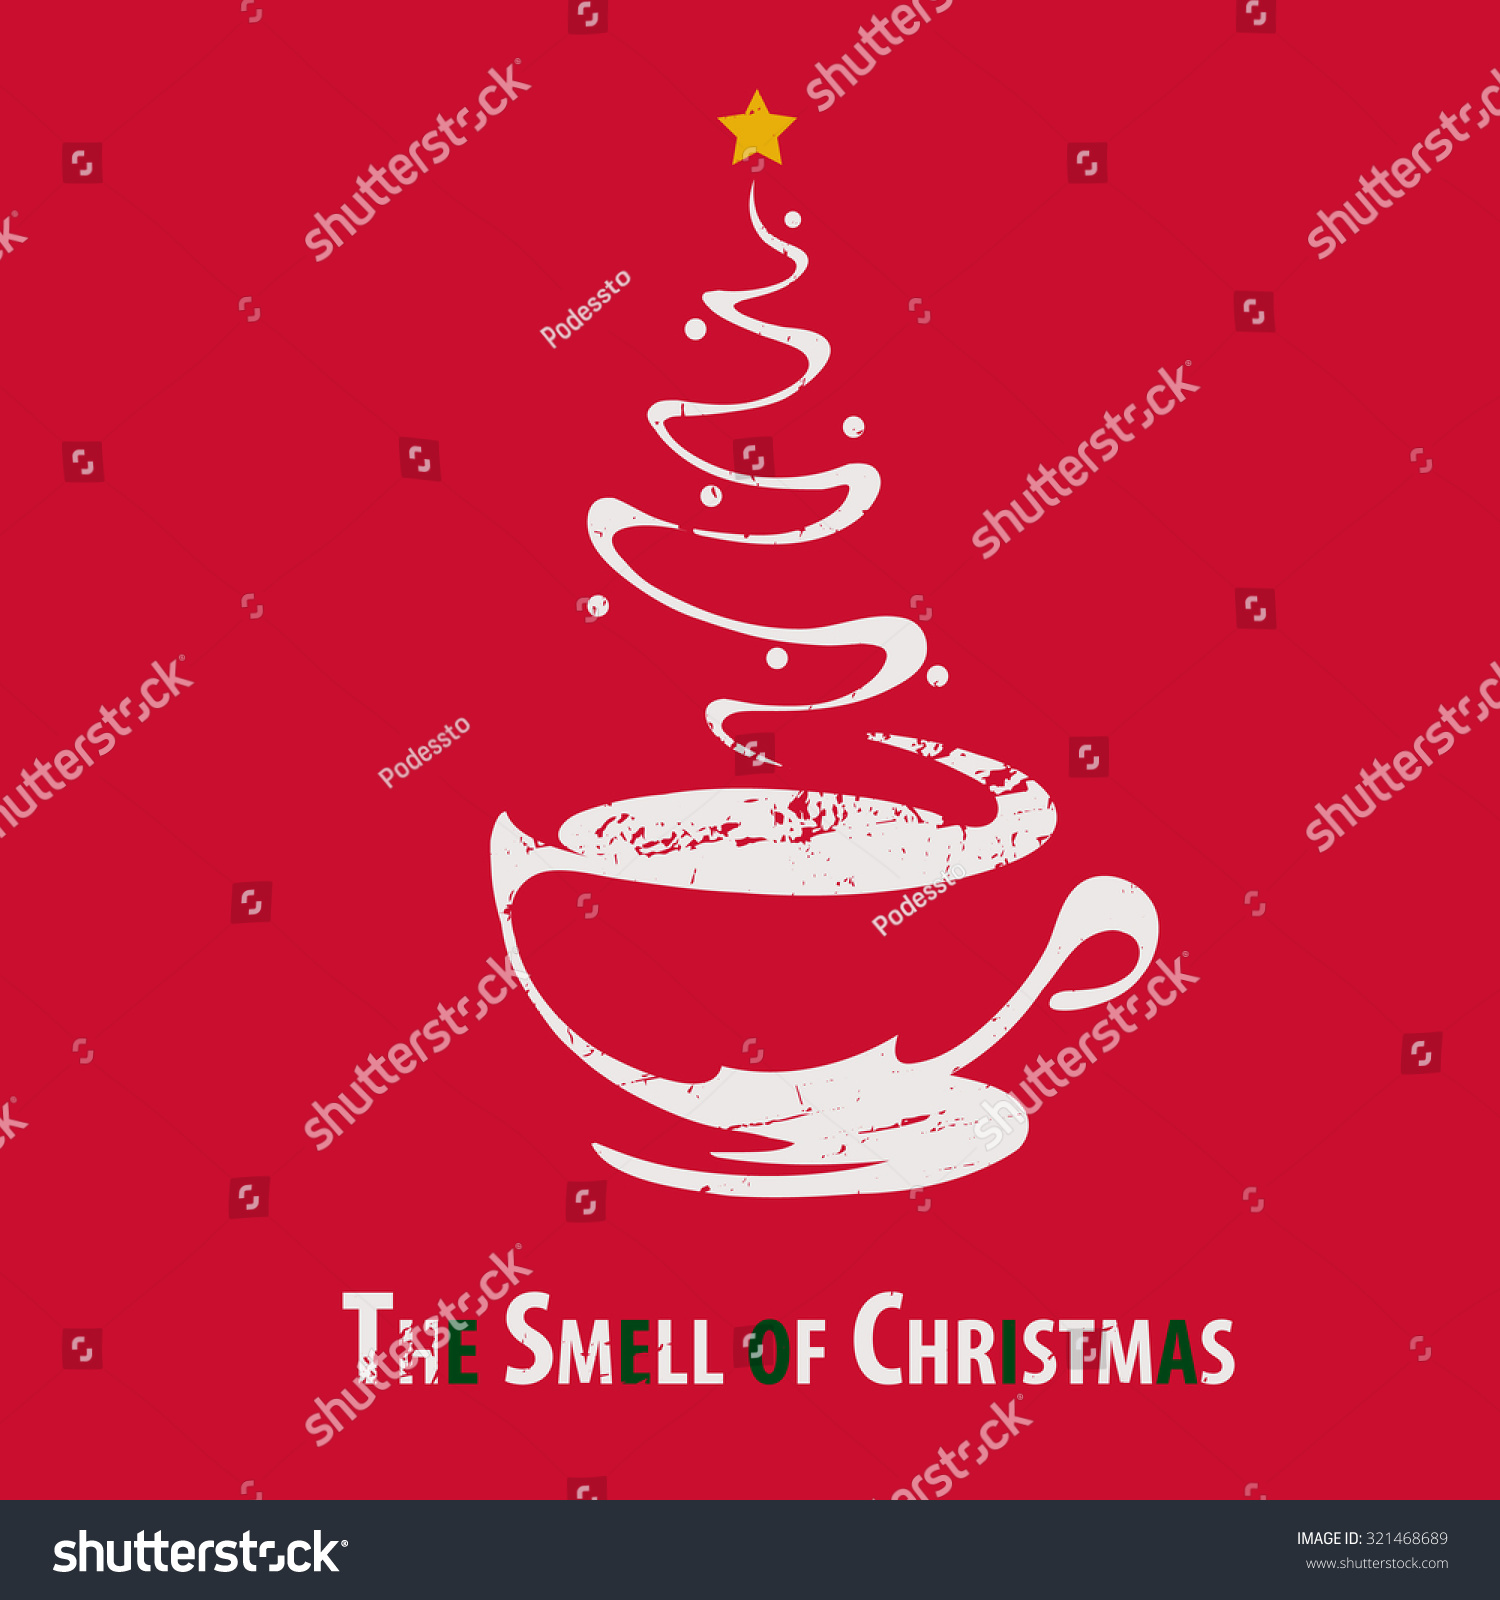 Coffee Christmas Cards.Funny Christmas Cards Smell Christmas Stock Vector Royalty